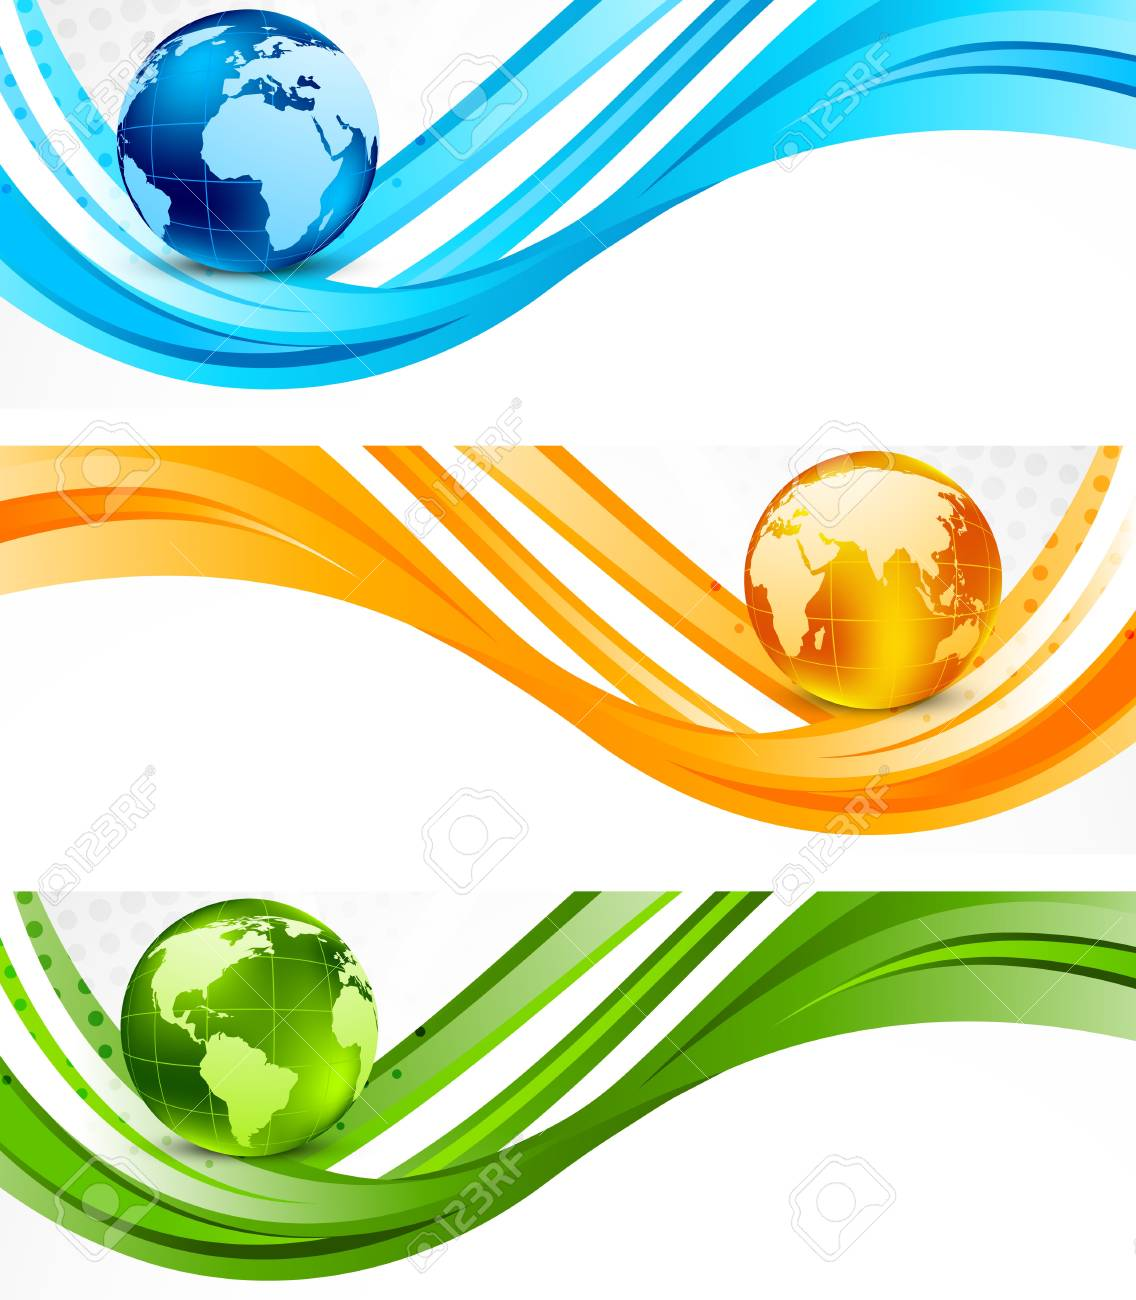 Set of banners with globe Stock Photo - 11539143